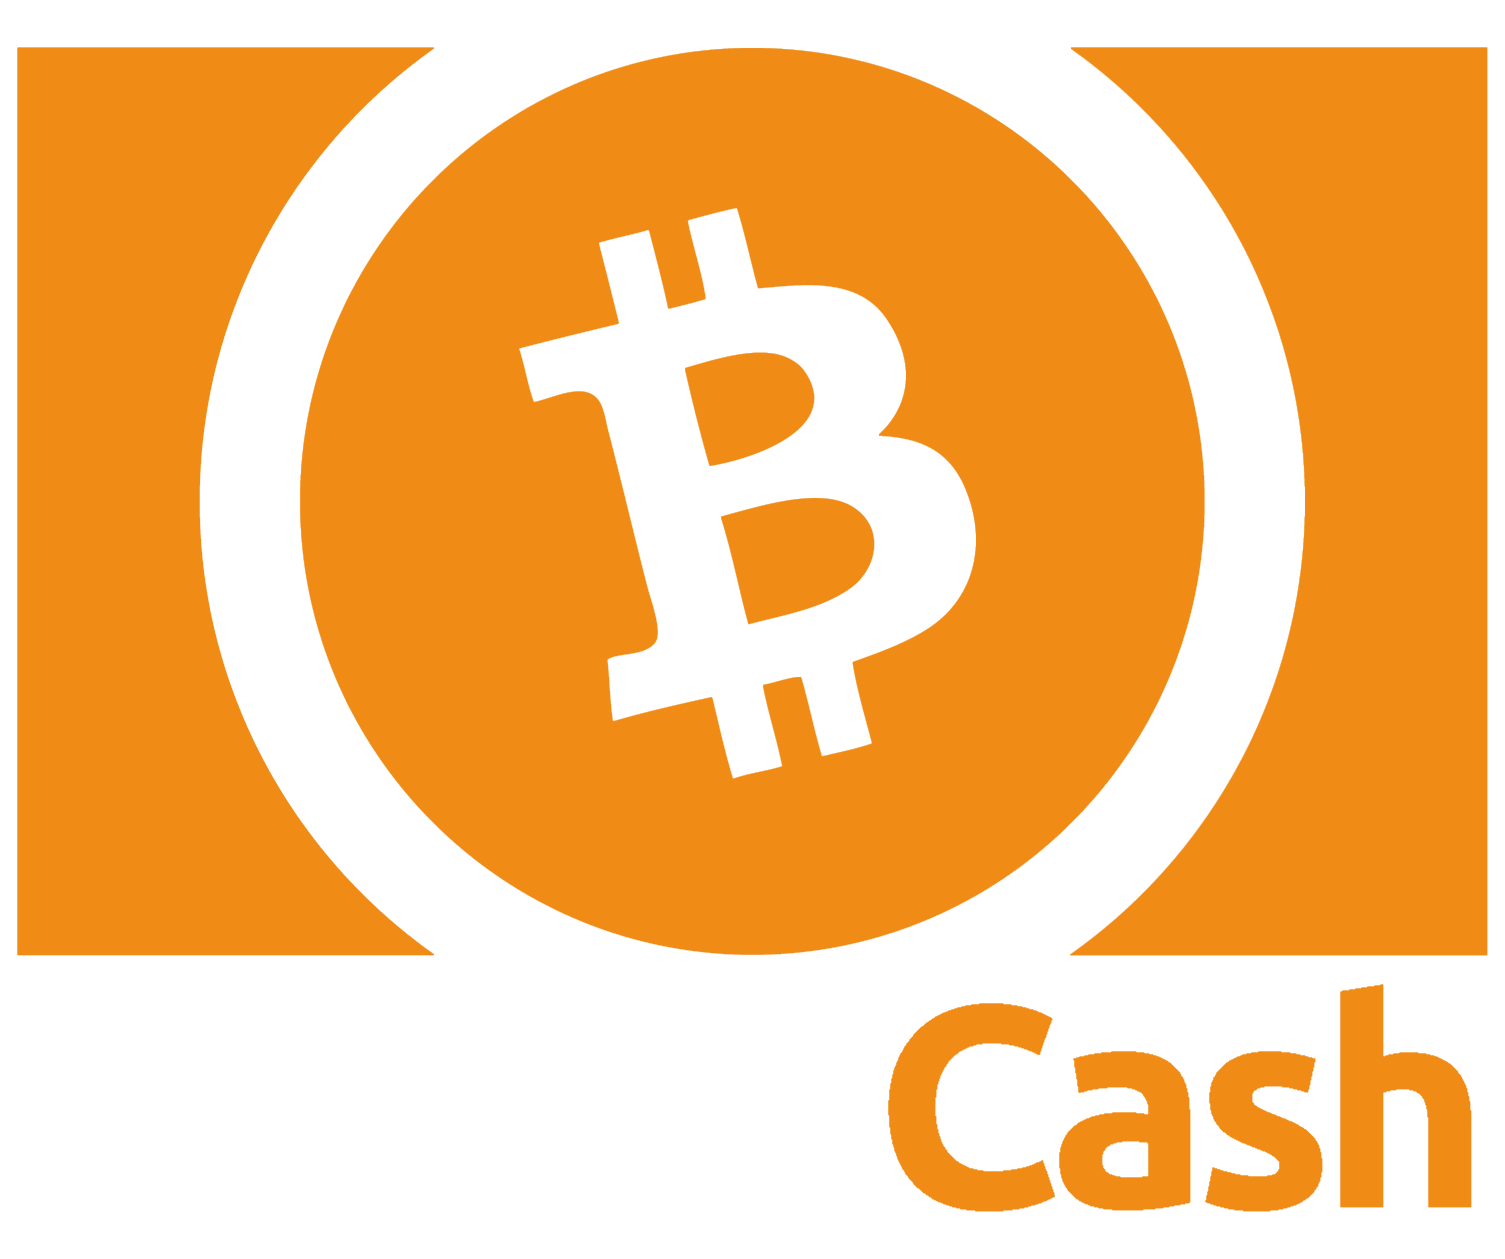 More Recently There Was The Arrival Of Bitcoin Cash Which Boldly Eschewed Professional Graphic Designers Who Could Make An